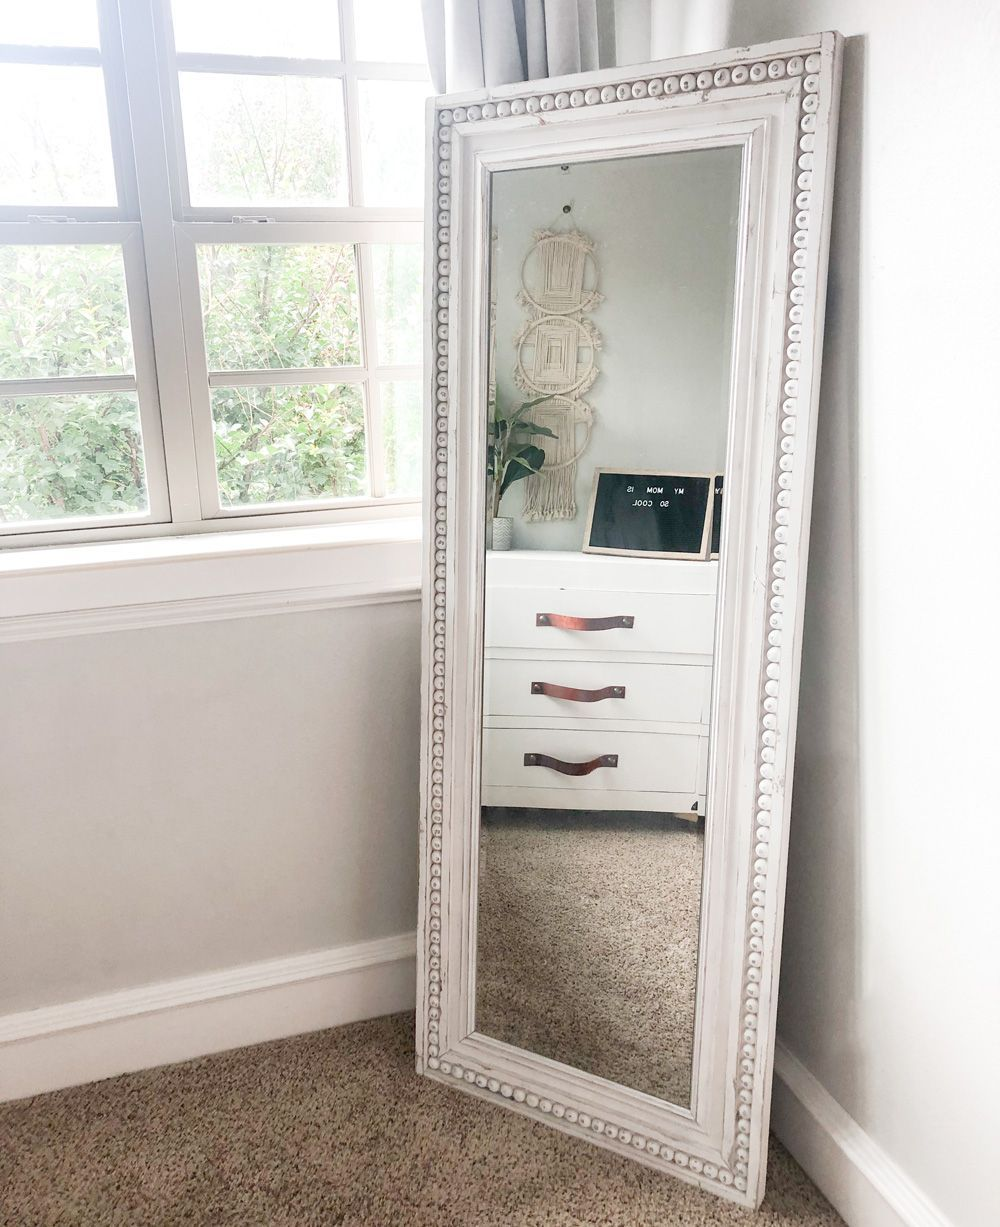 Pin By Samara Piper On Home Ideas In 2020 Full Length Mirror Diy Mirror Frame Diy Diy Mirror